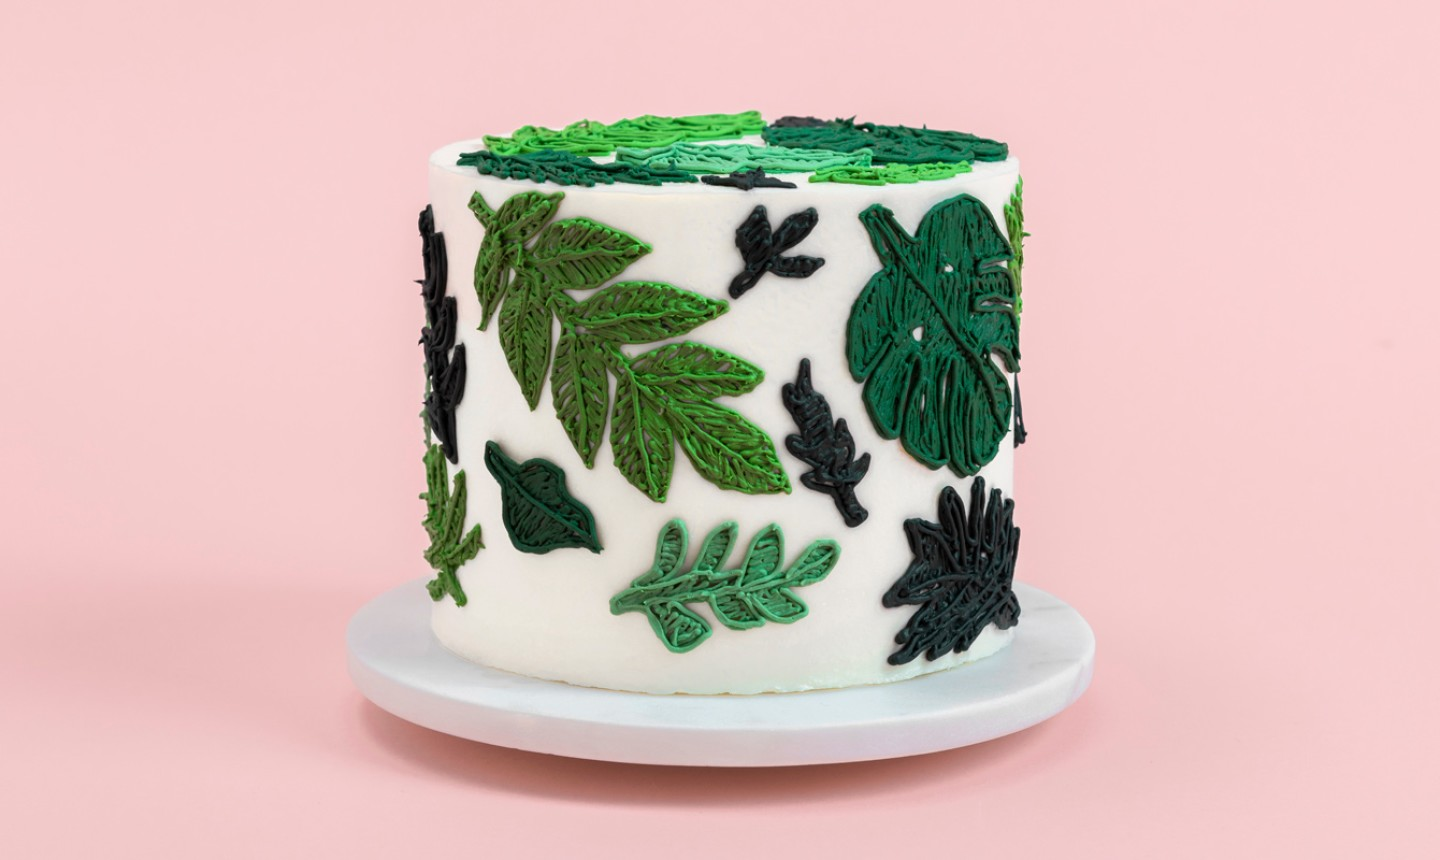 embroidery plant cake